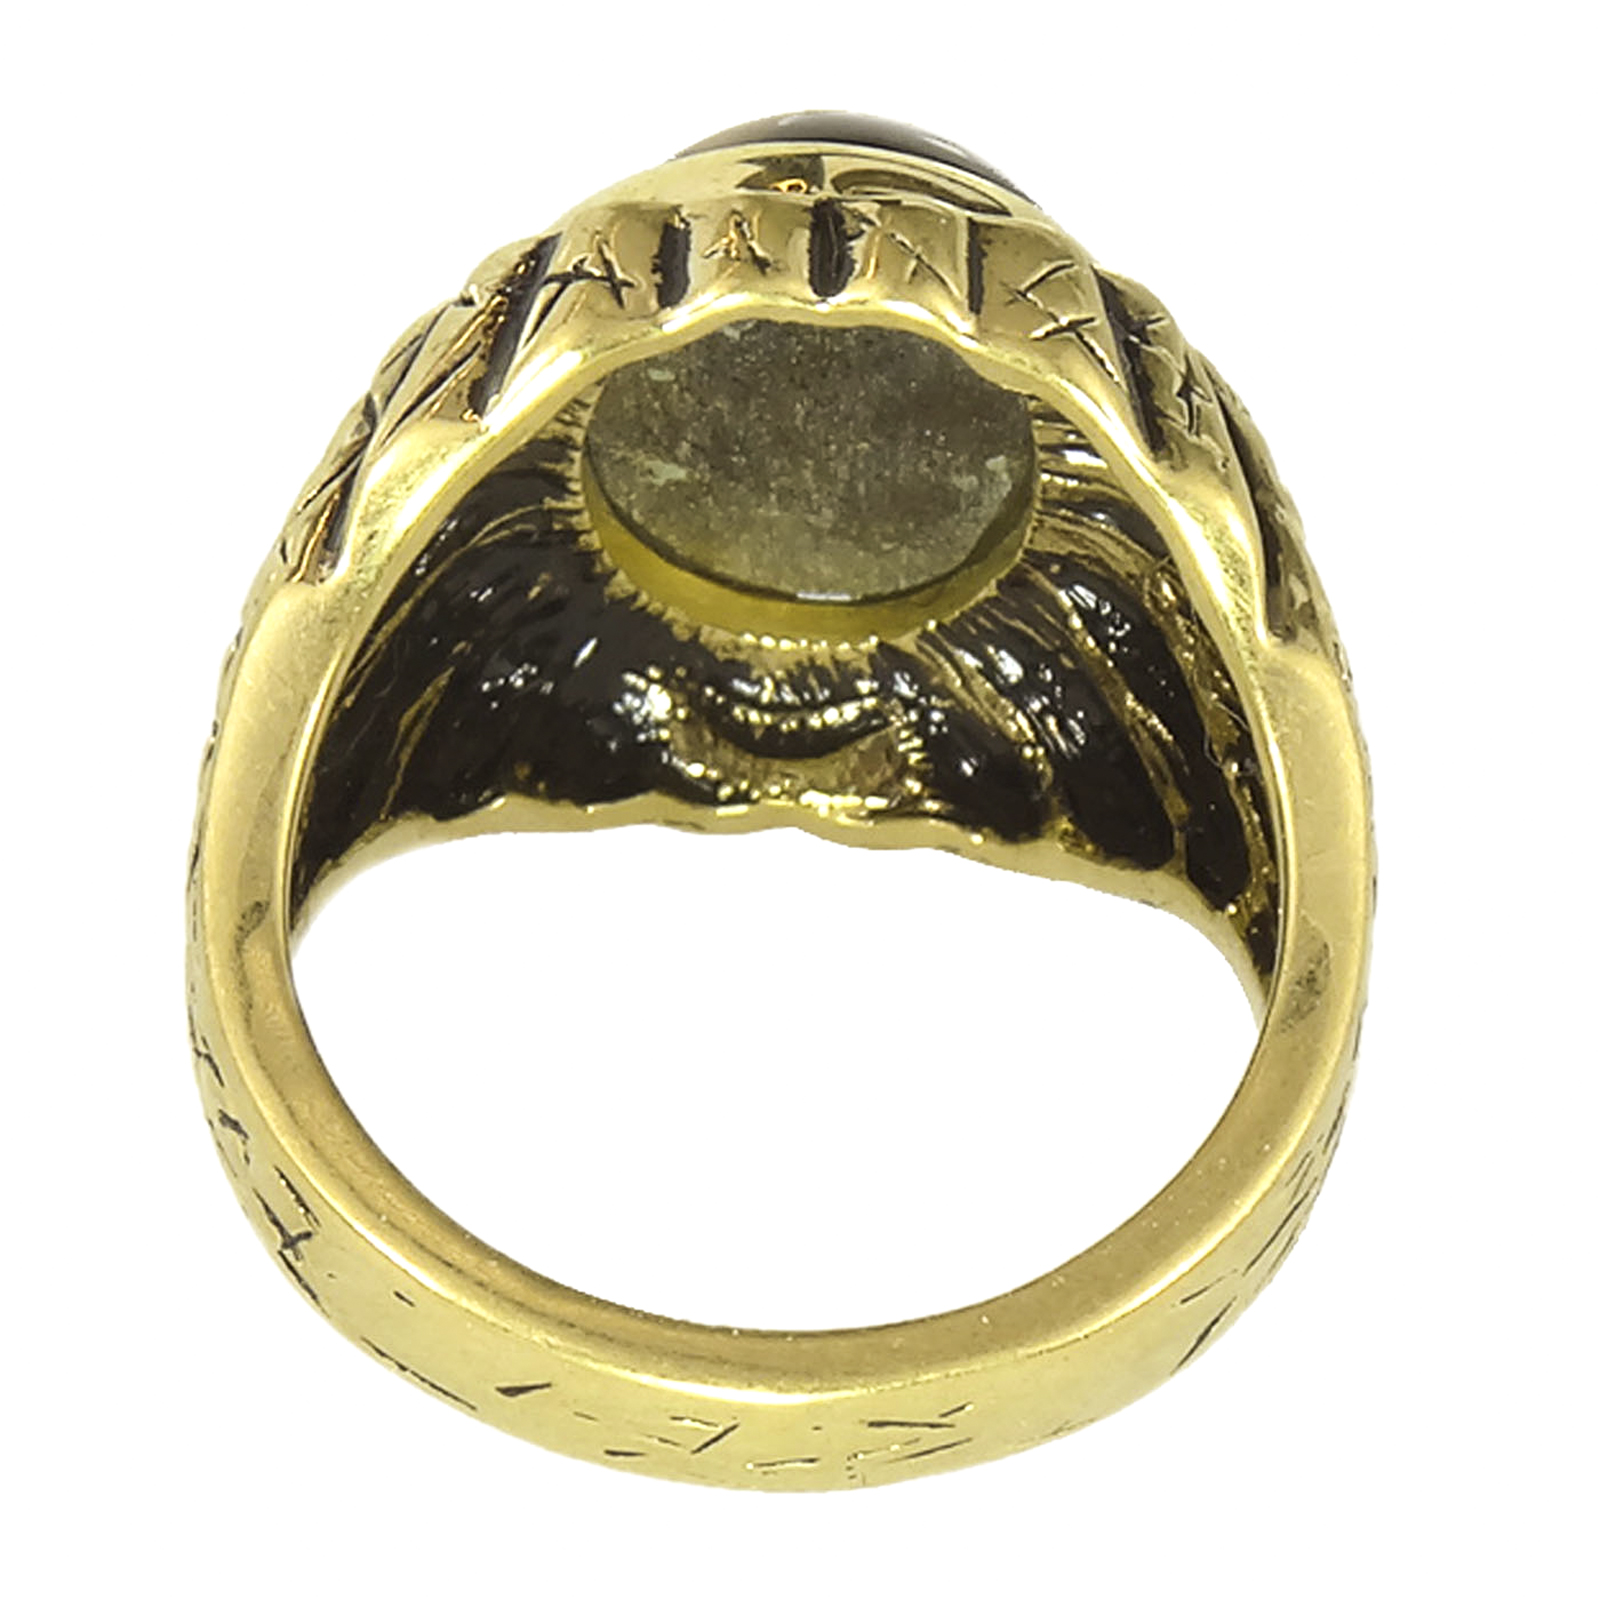 ring adjustable stone metallic jewelry rings vince lyst product in normal gallery goldtigers eye gold tigers camuto